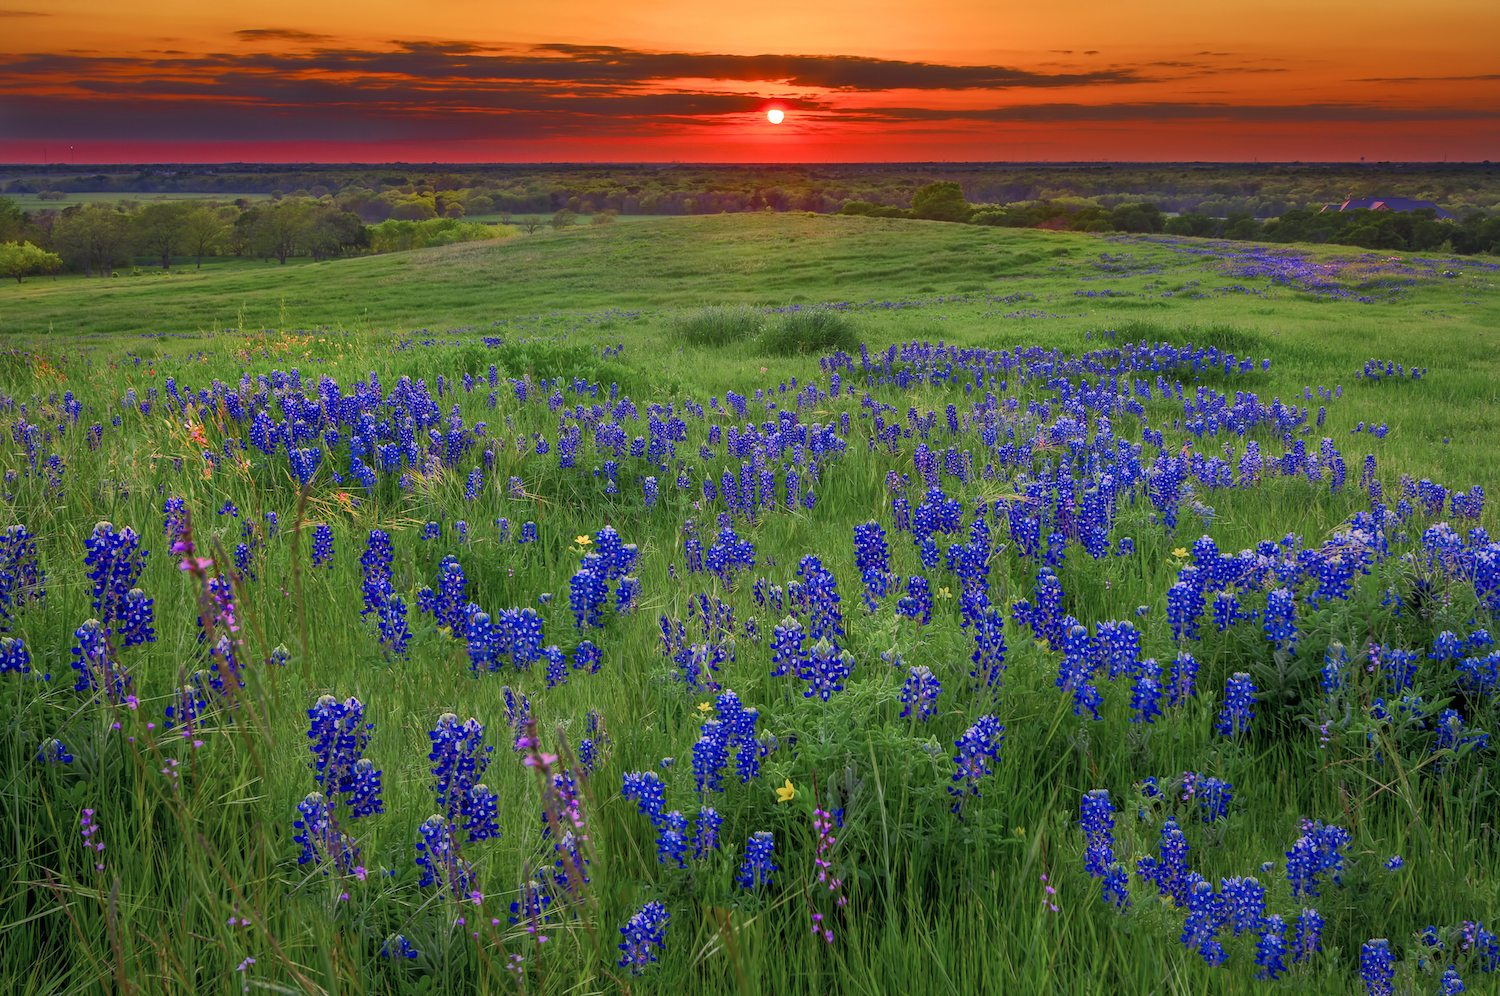 Bluebonnet Trail Road Trip